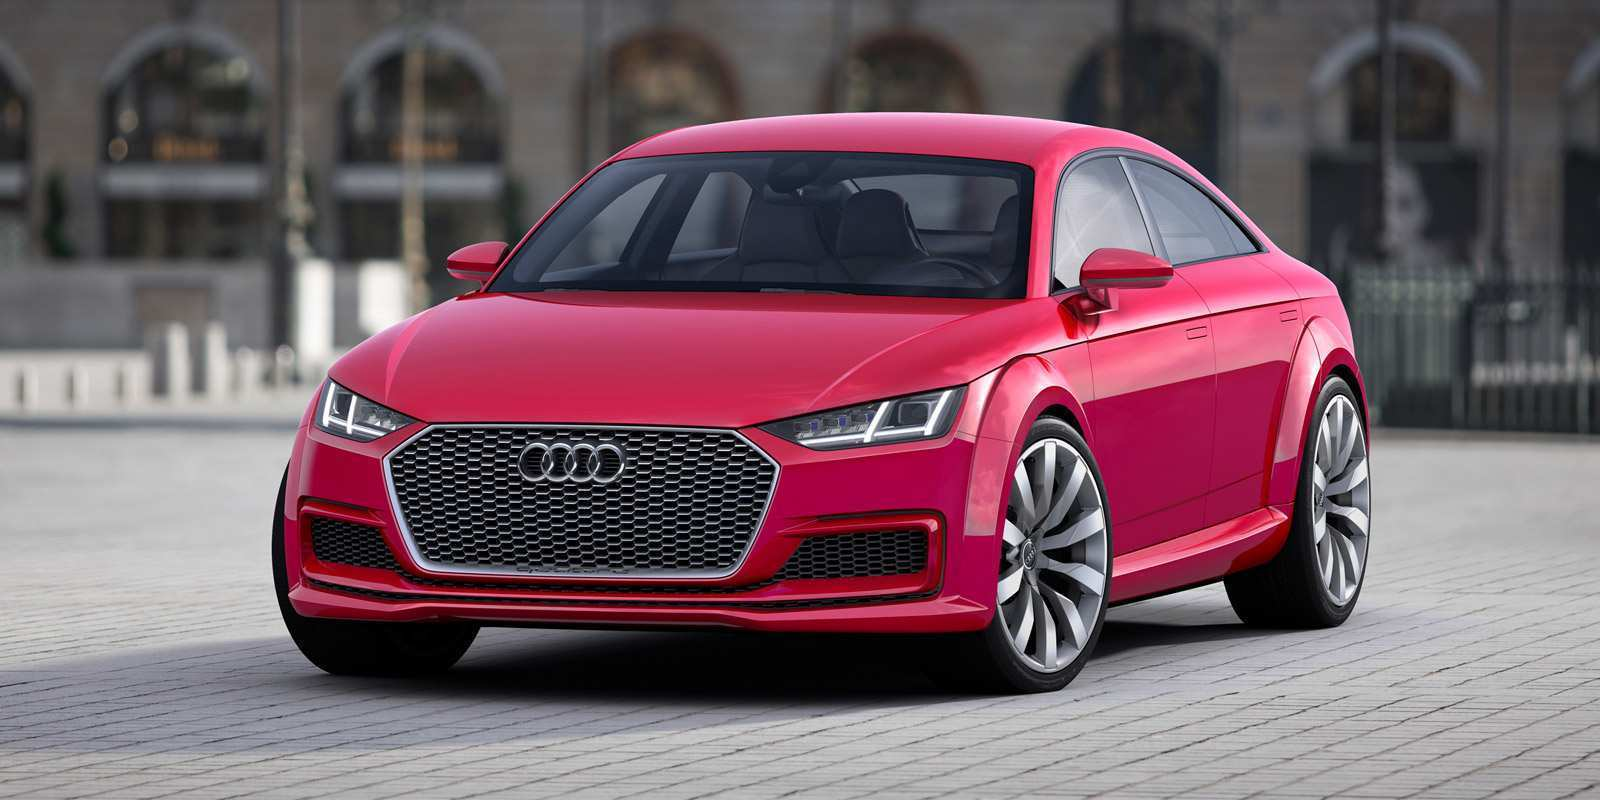 91 The New 2019 Audi A3 Picture for New 2019 Audi A3